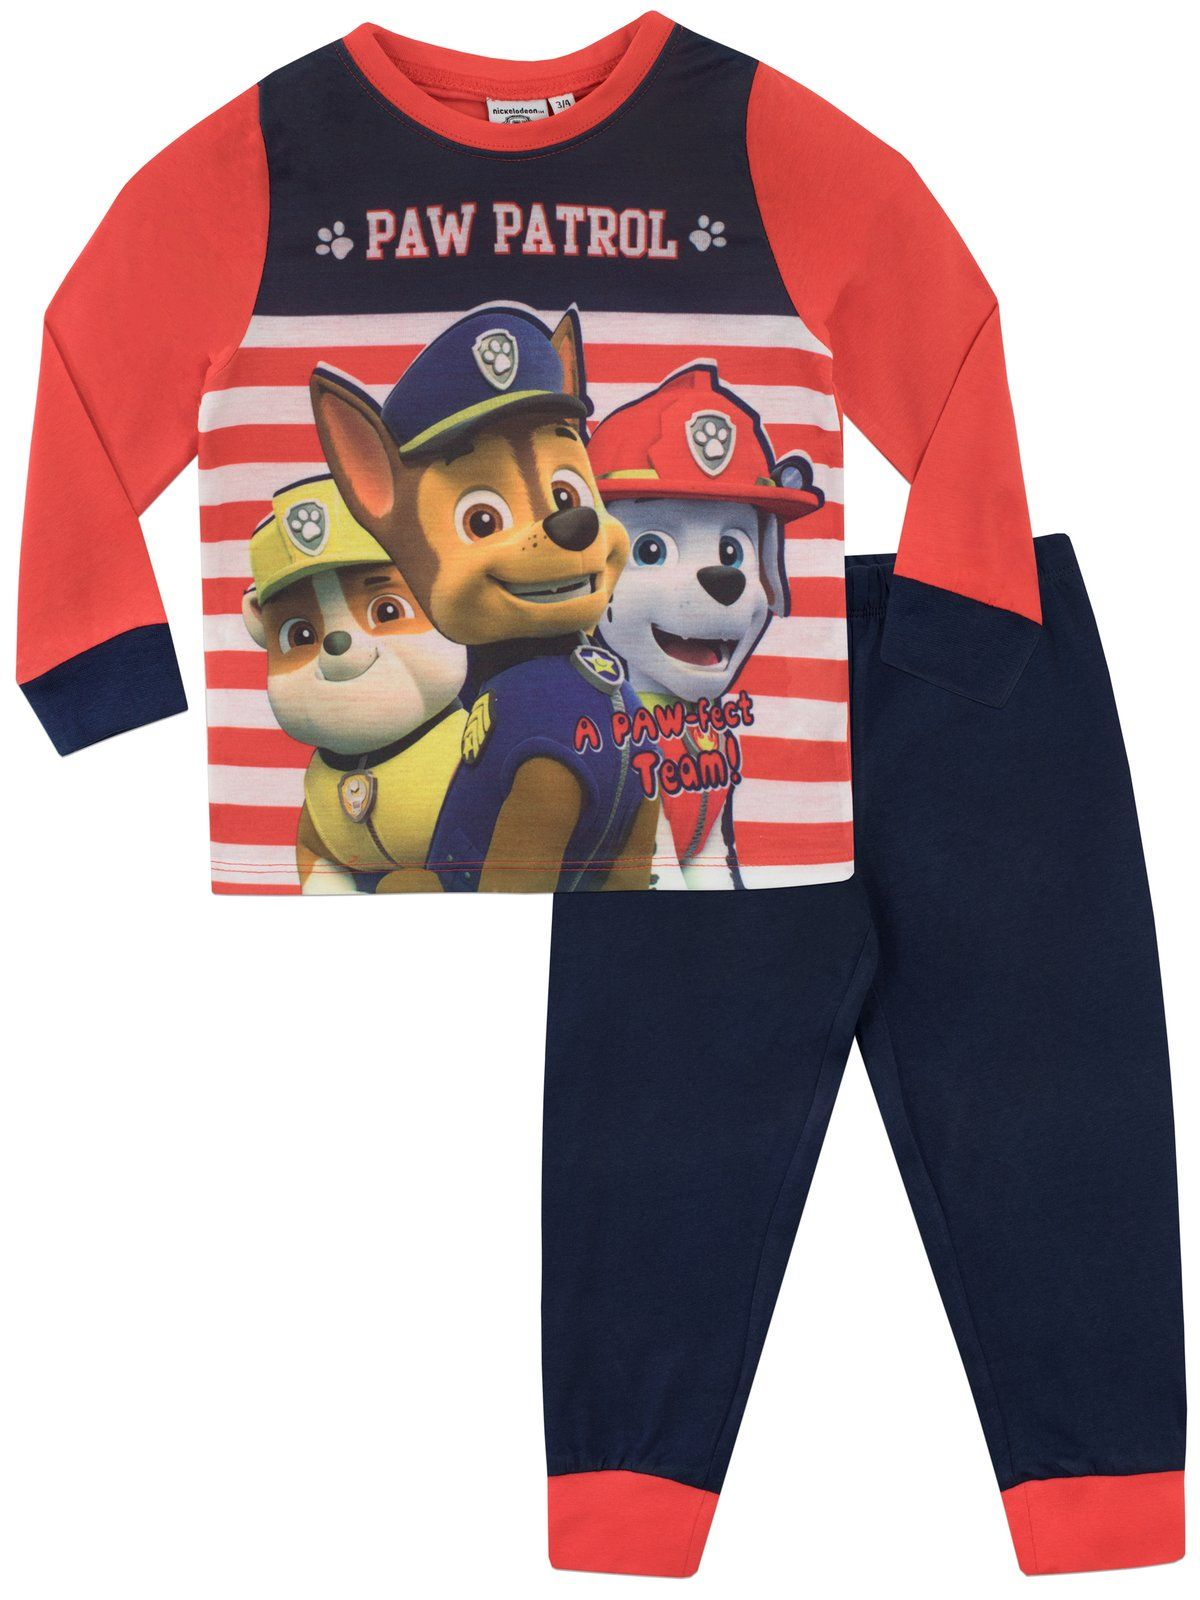 Boys Paw Patrol Snuggle Fit Long Pyjamas Sizes 18 Months to 5 Years